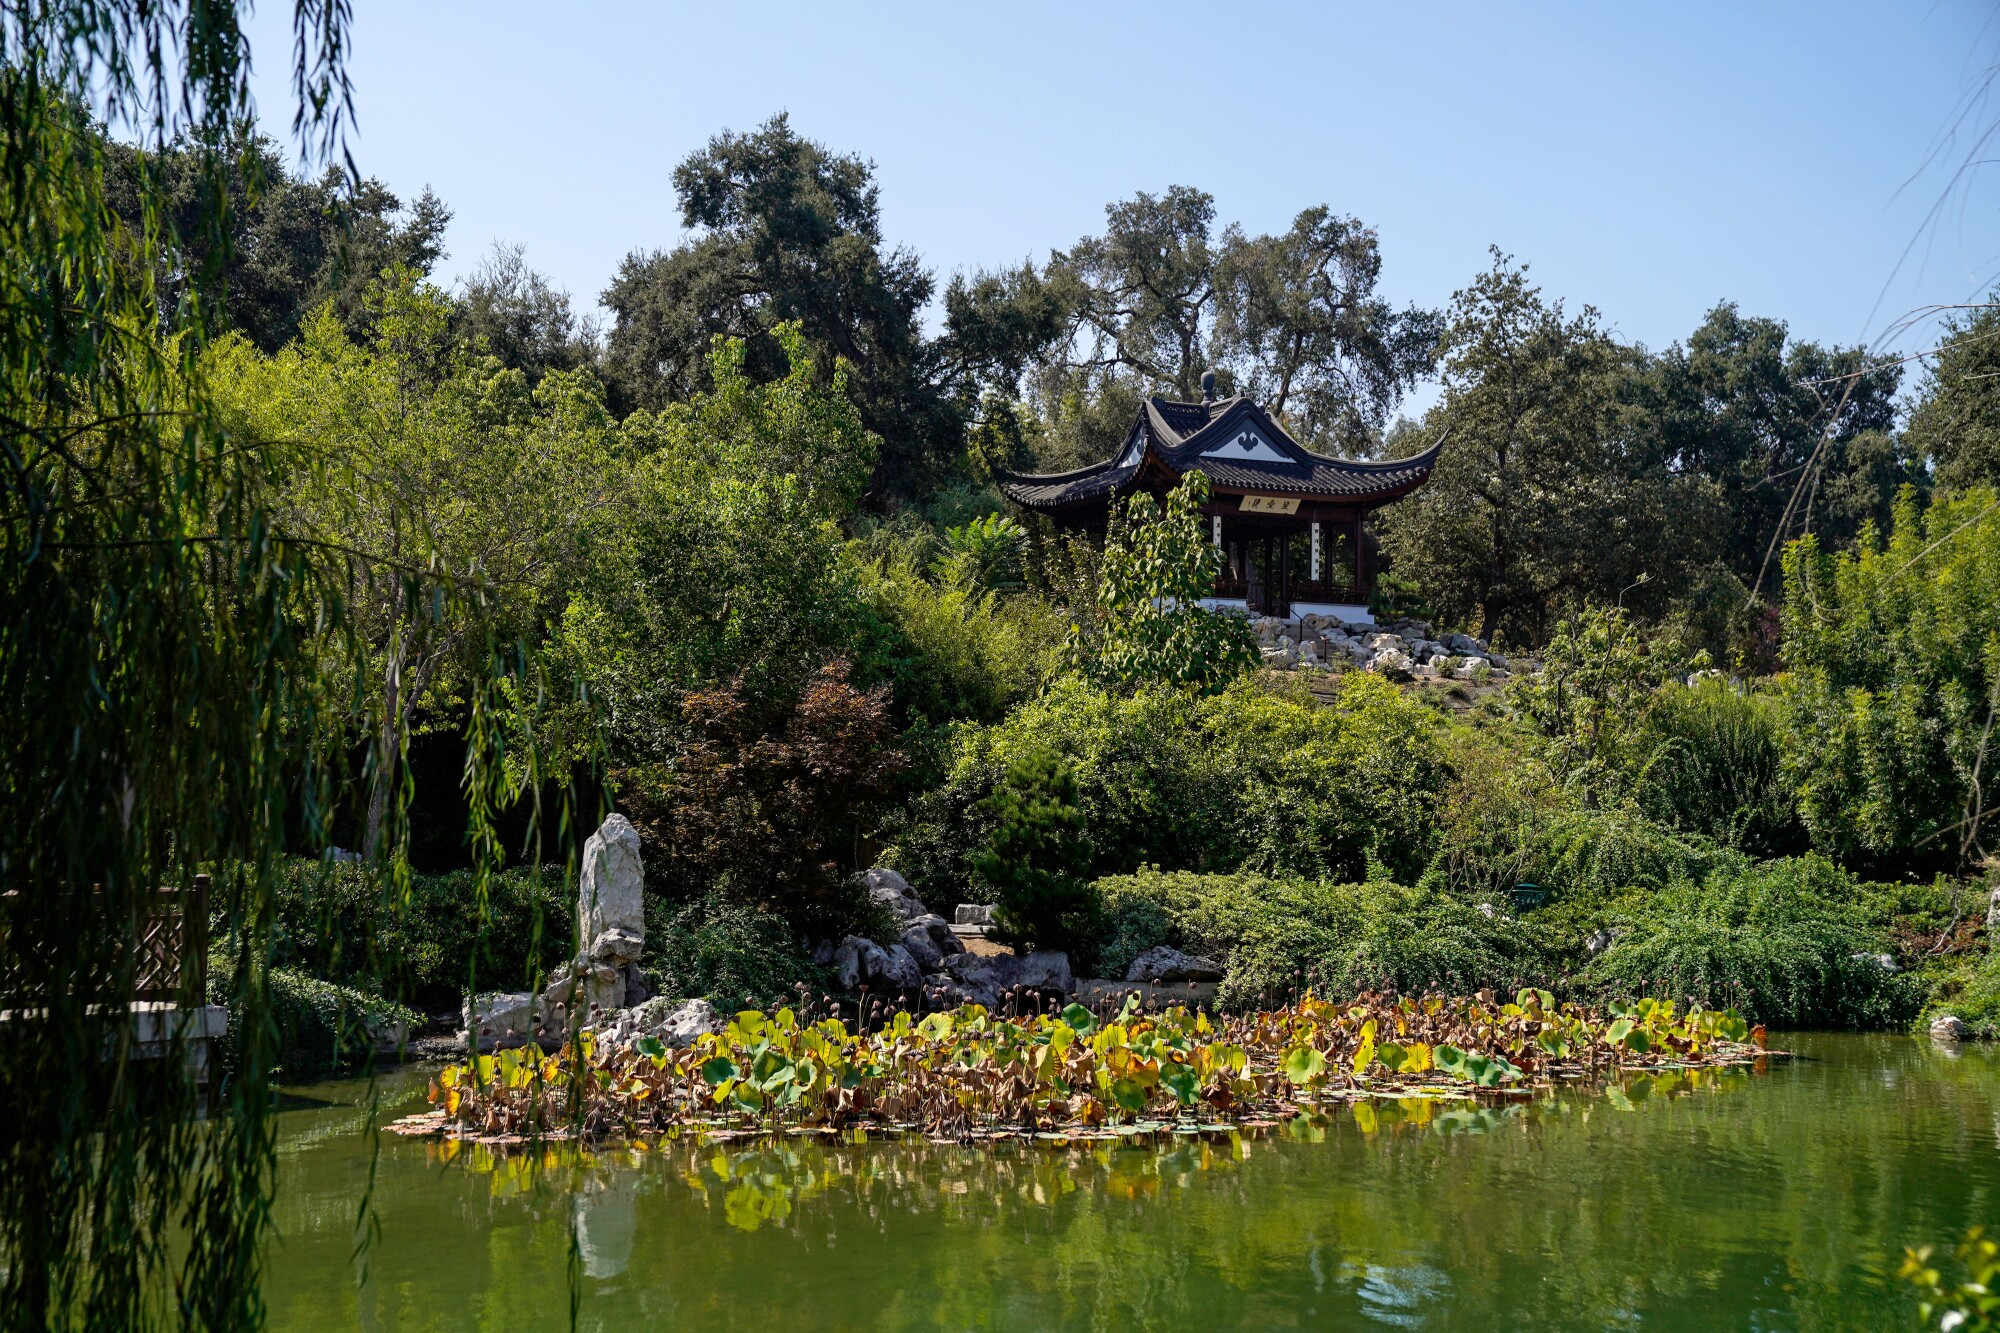 The Stargazing Tower in the new Chinese Garden at the Huntington Library, Art Museum, and Botanical Gardens.